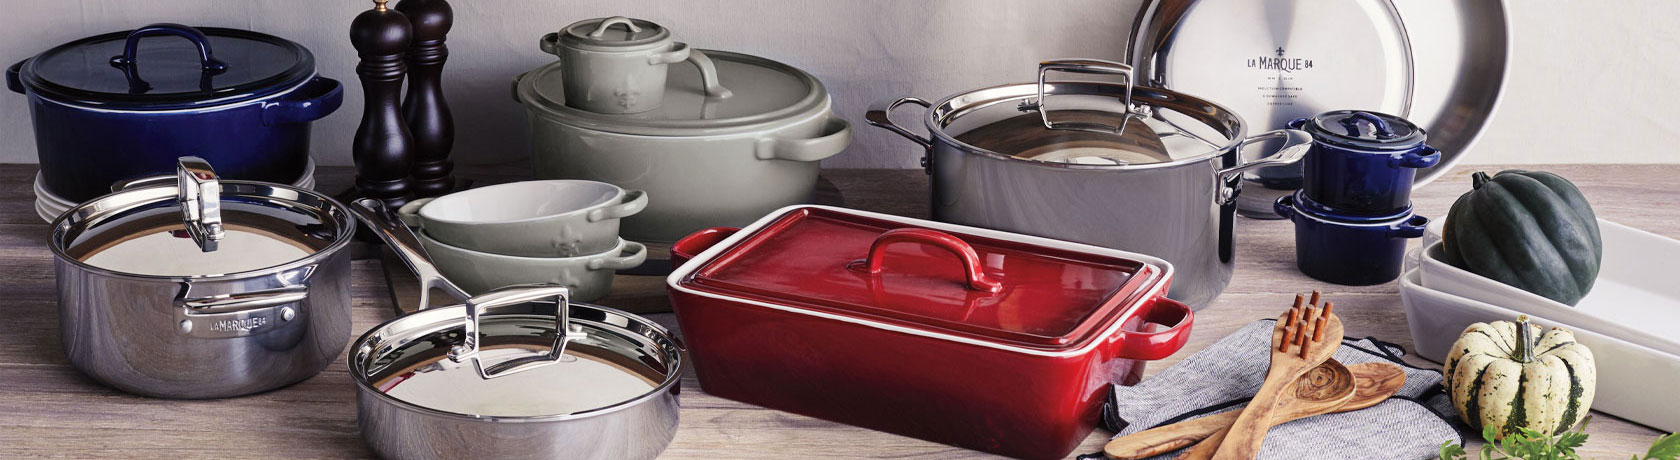 La Marque 84 cookware at Sur La Table